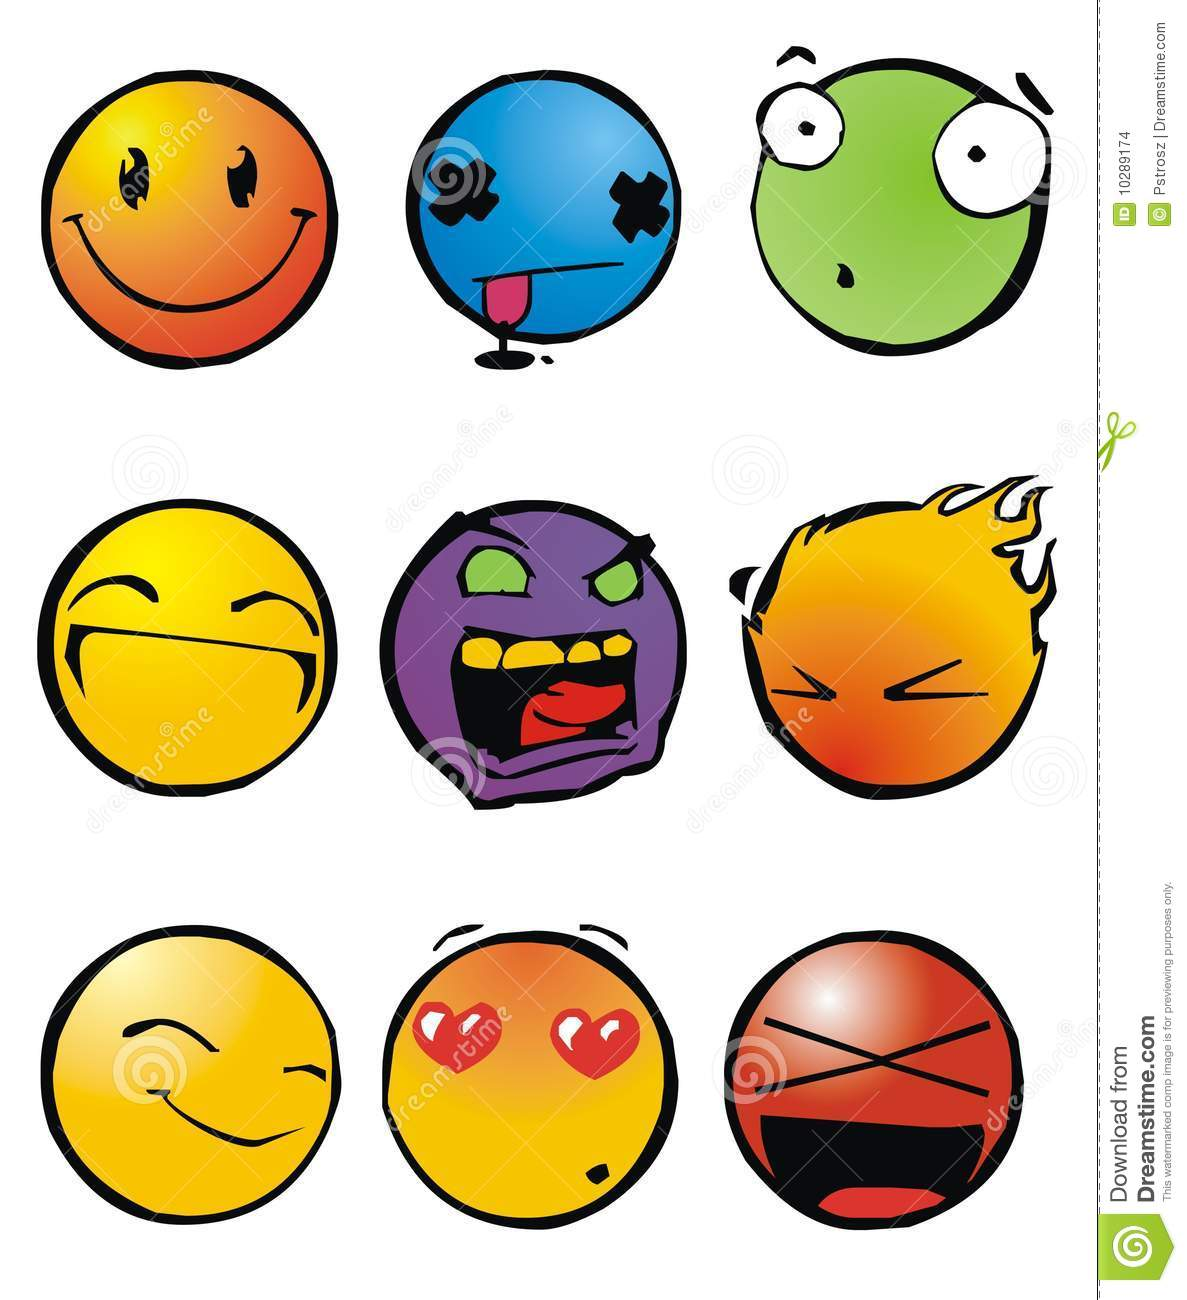 Funny Smiley Emoticons